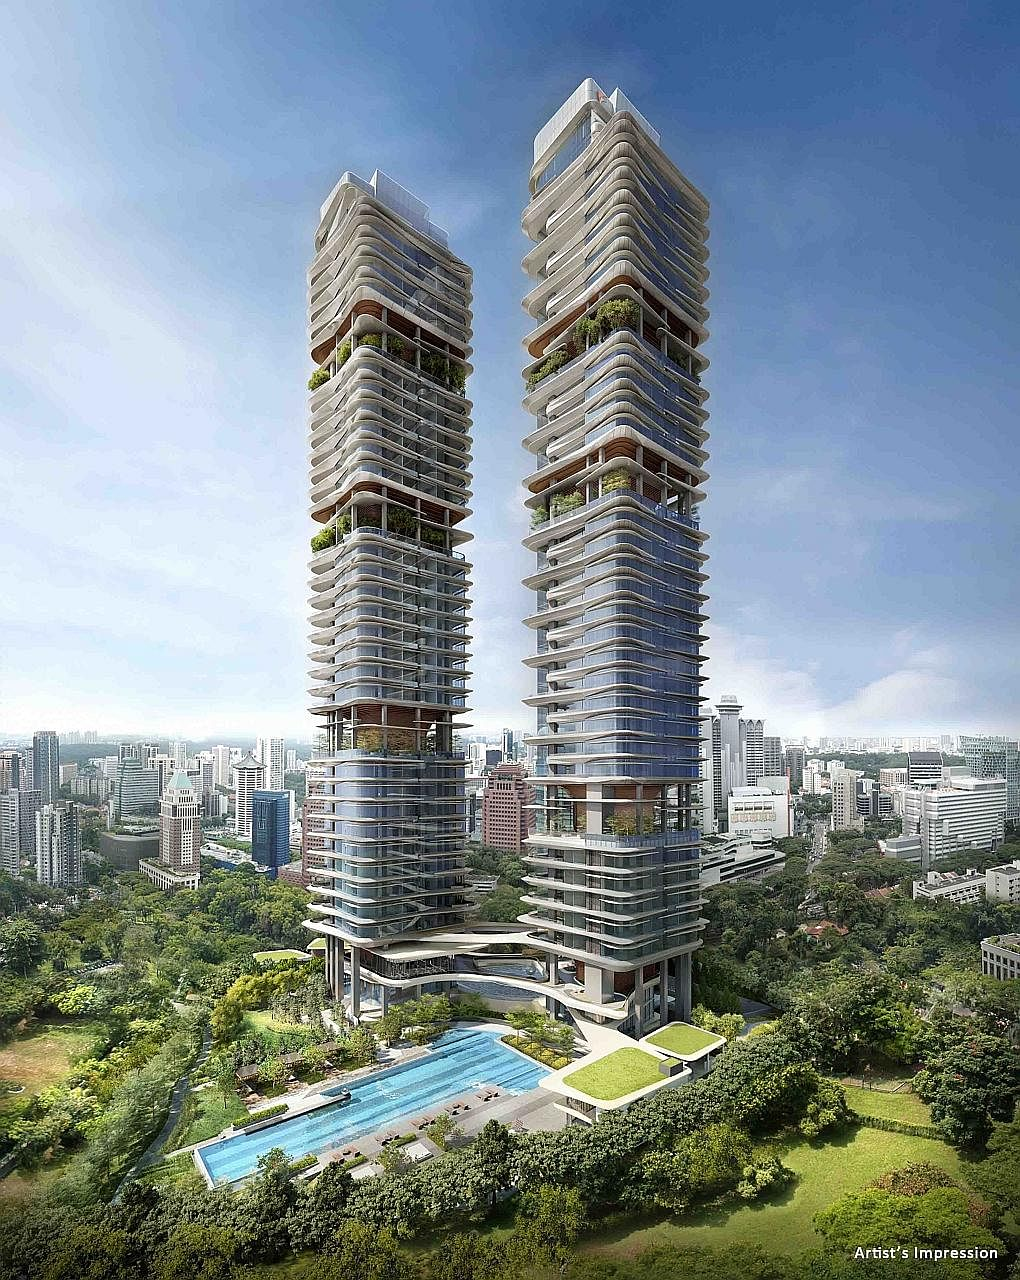 Only 25 units of the 124-unit New Futura, in Leonie Hill Road, were released during the private viewing last Thursday. A third of the buyers were Singaporeans, while two-thirds were Singapore permanent residents and foreigners.